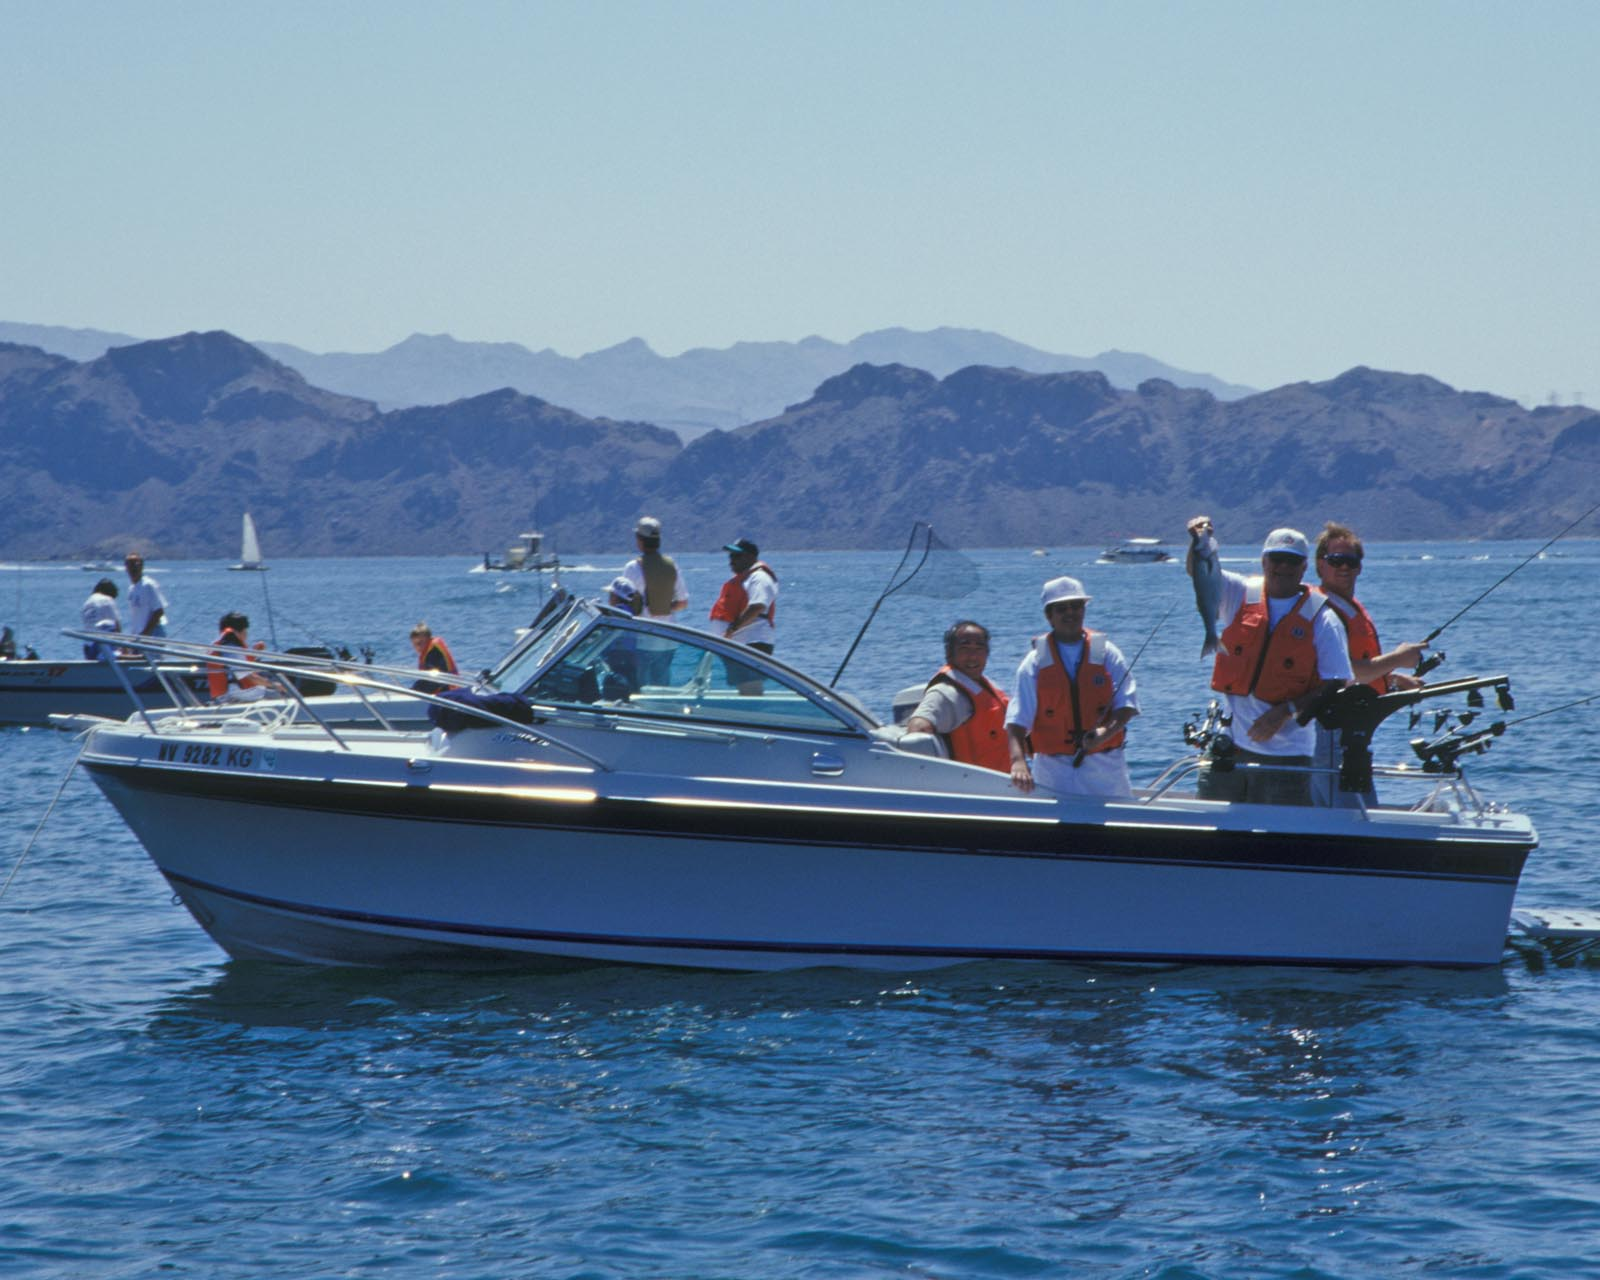 Hoover dam bureau of reclamation for Lake mohave fishing